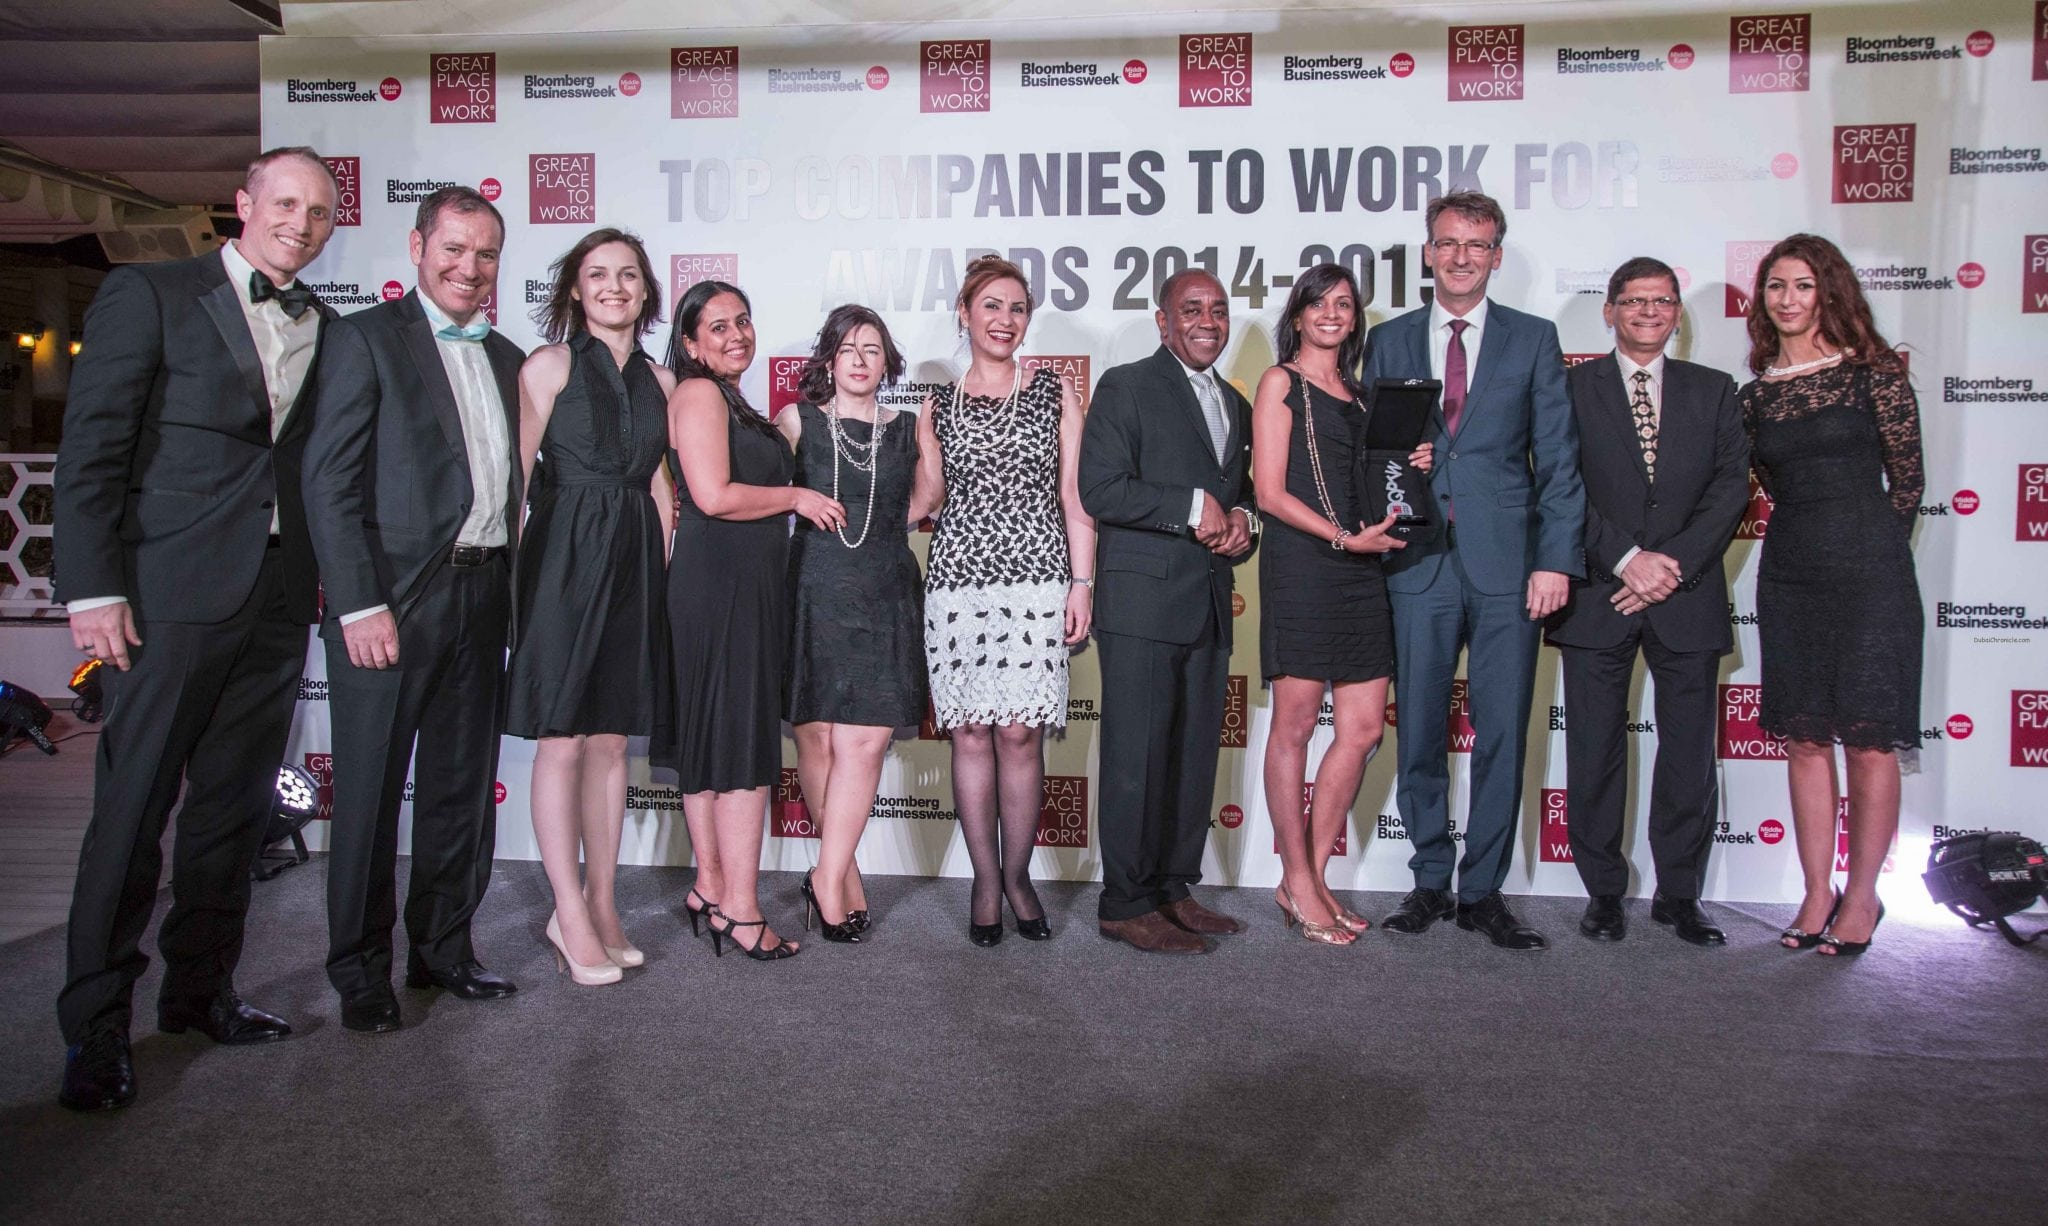 DHL named Top Company to Work For in the UAE for the second consecutive ...